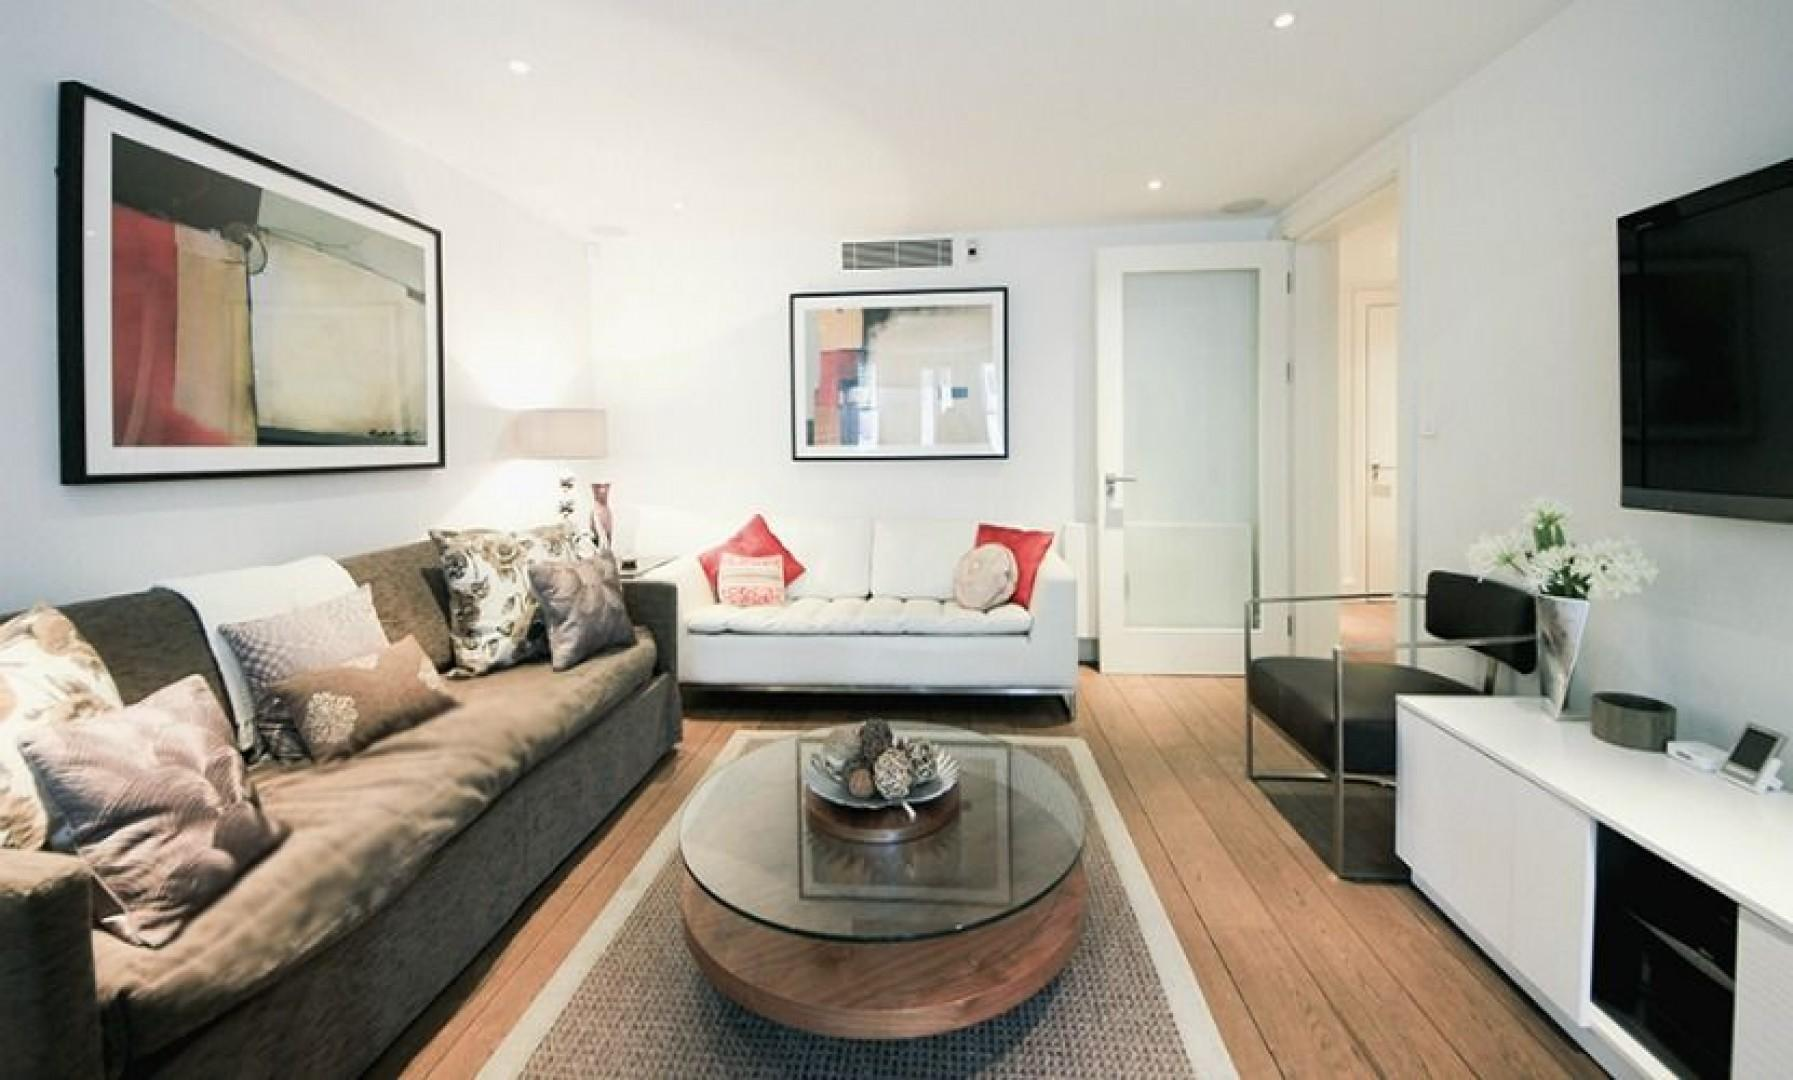 This comfortable living room with a sofa that converts into two beds is roomy and ideal for a family